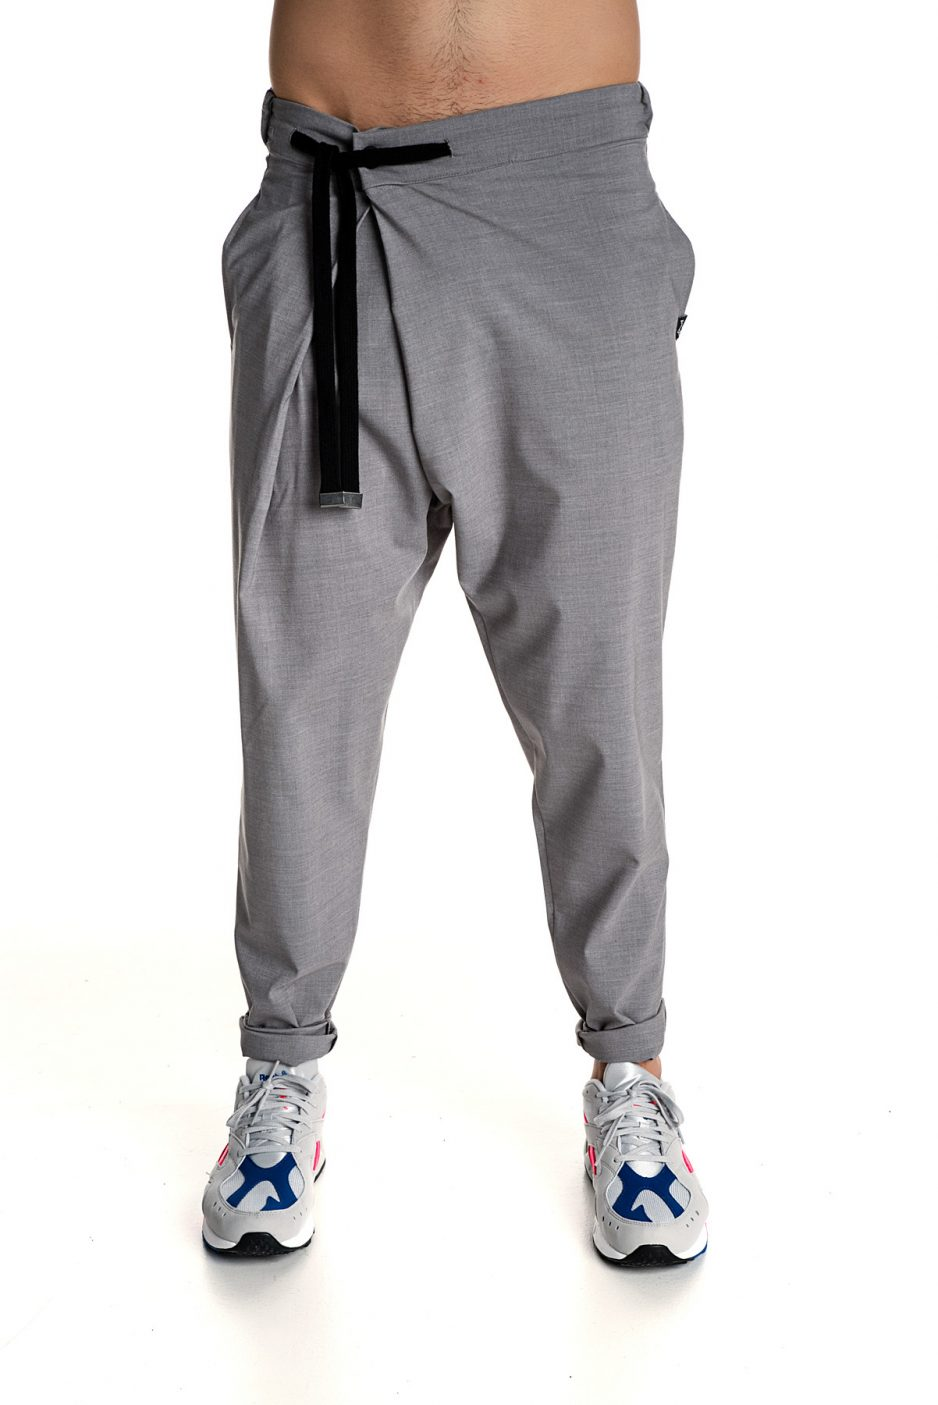 Grey P/COC cool trousers